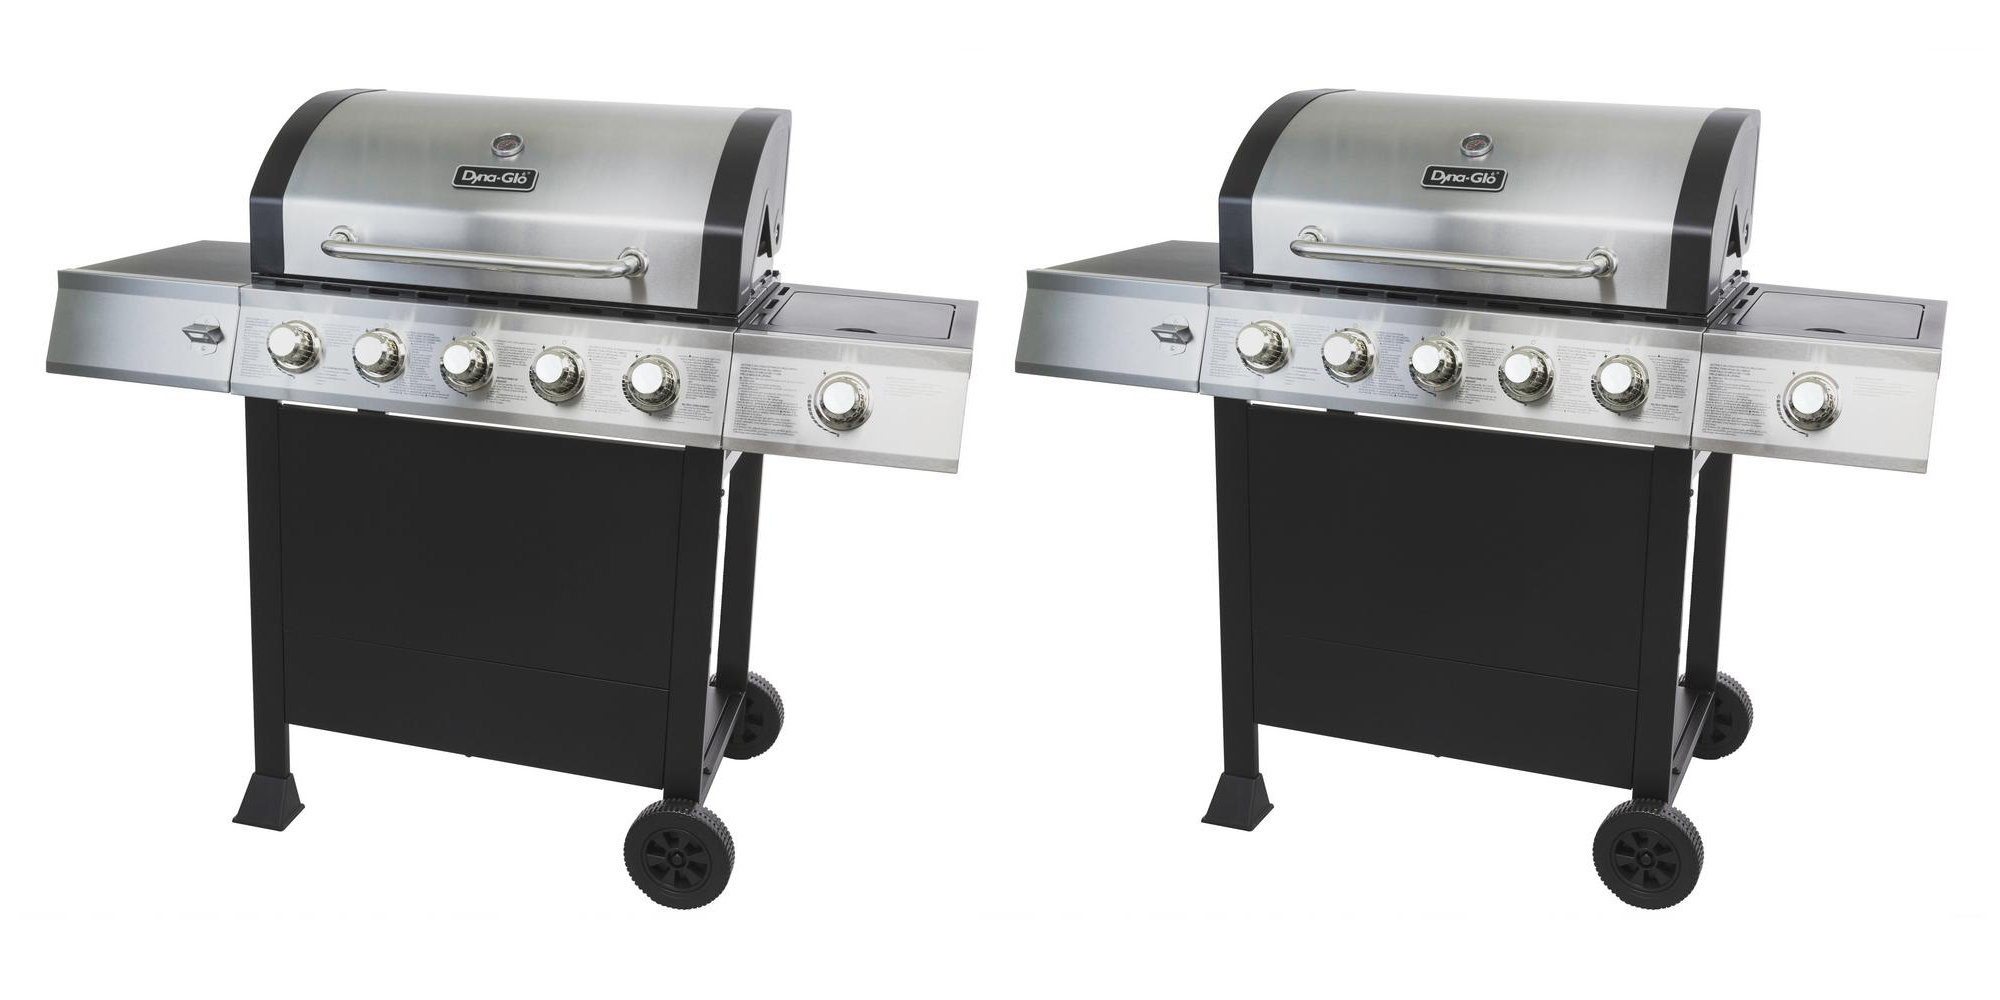 Up to 25% off grills & BBQ accessories: Dyna-Glo 5-Burner Propane $56 off + more